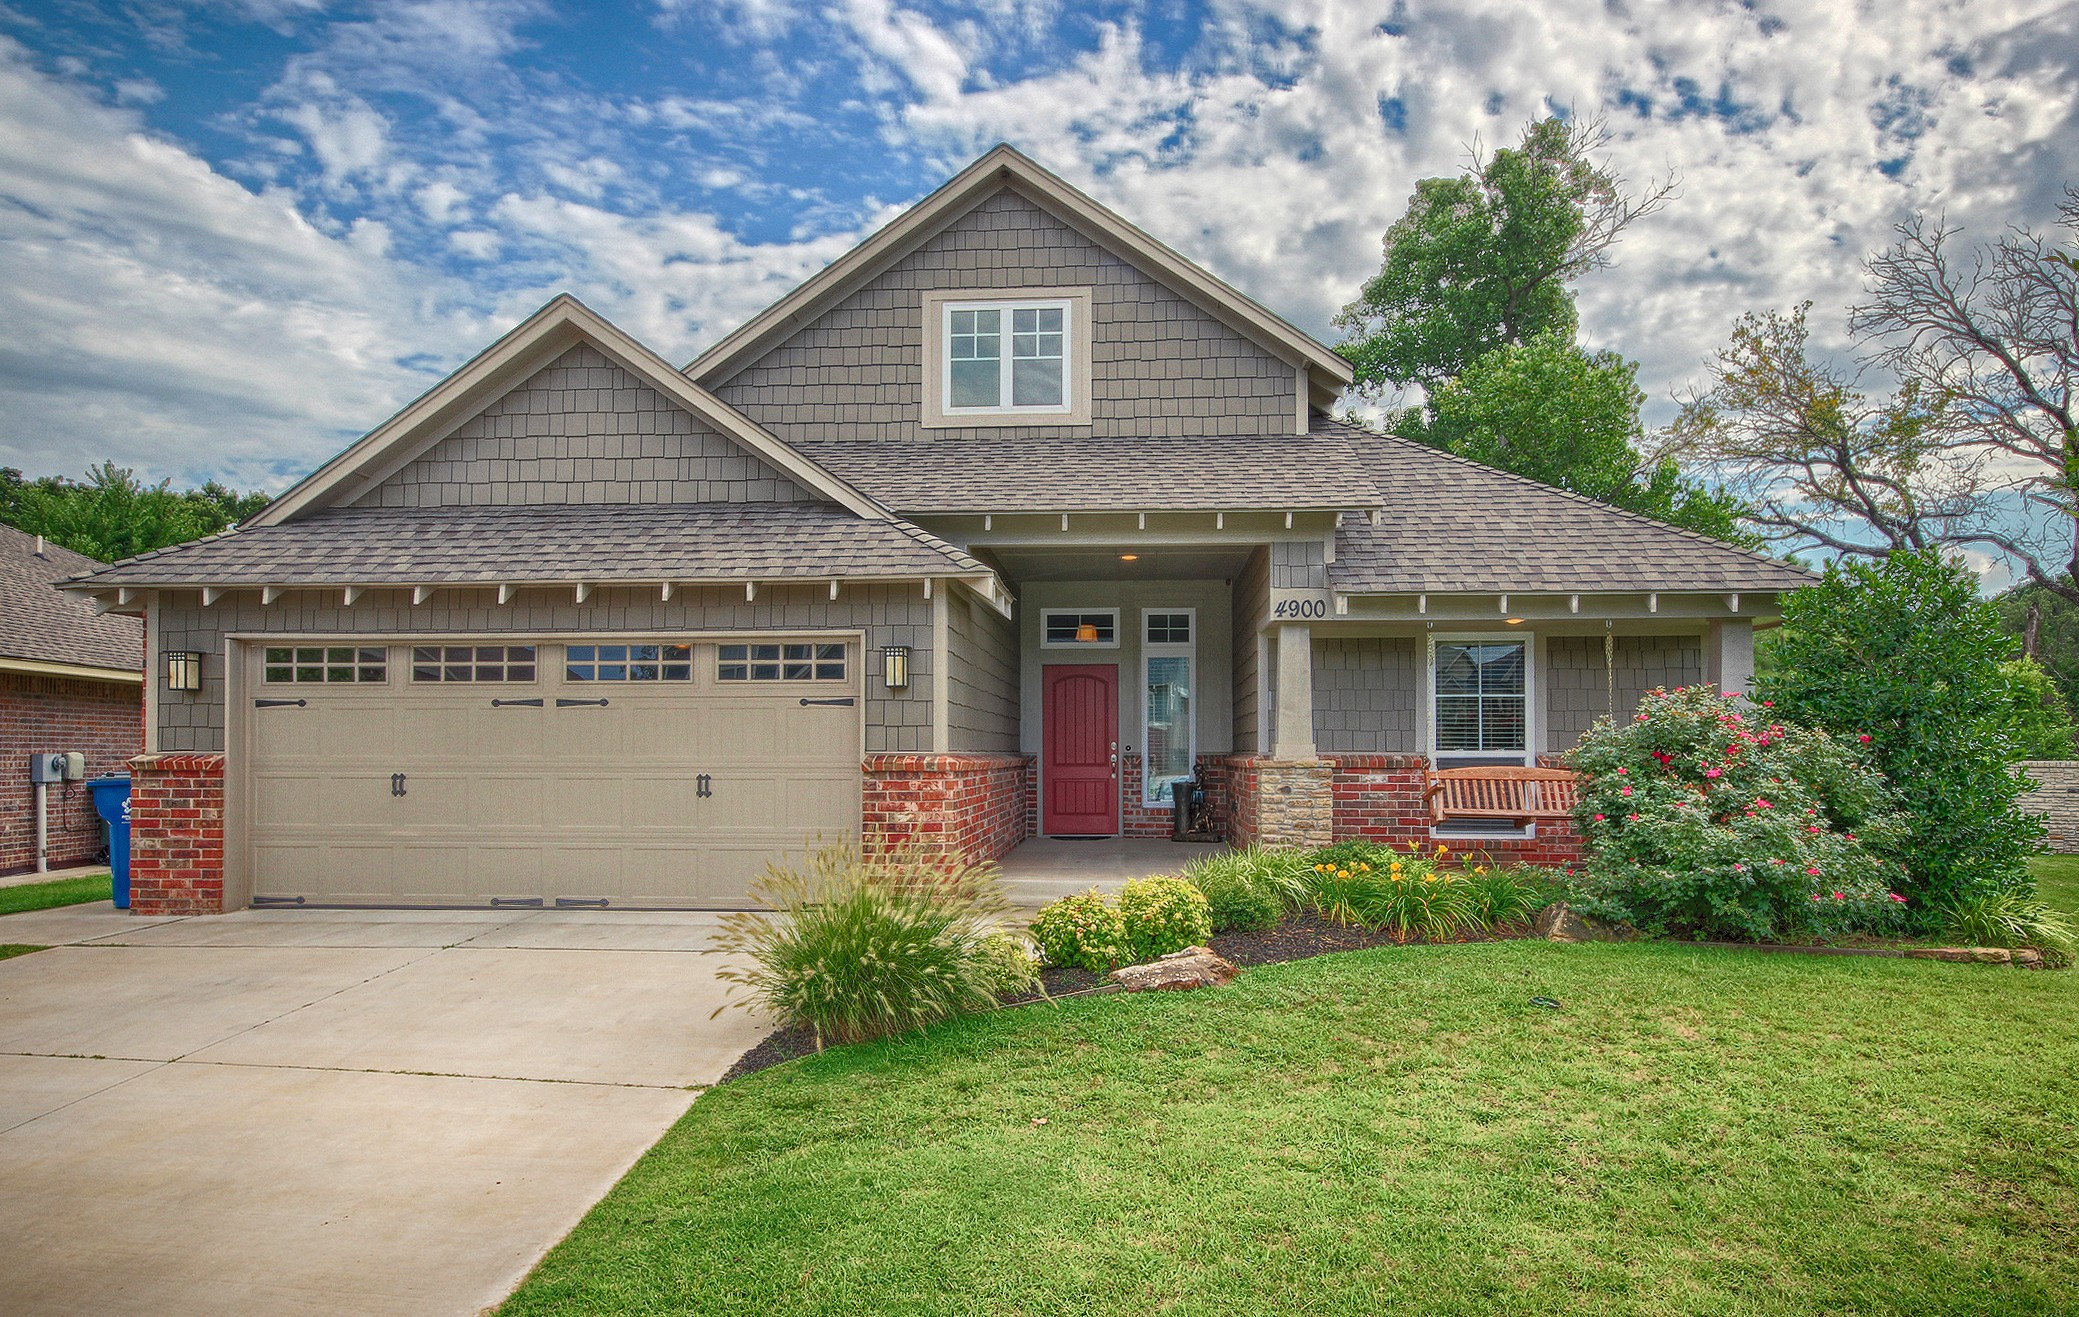 New Homes For Sale In Edmond Ok